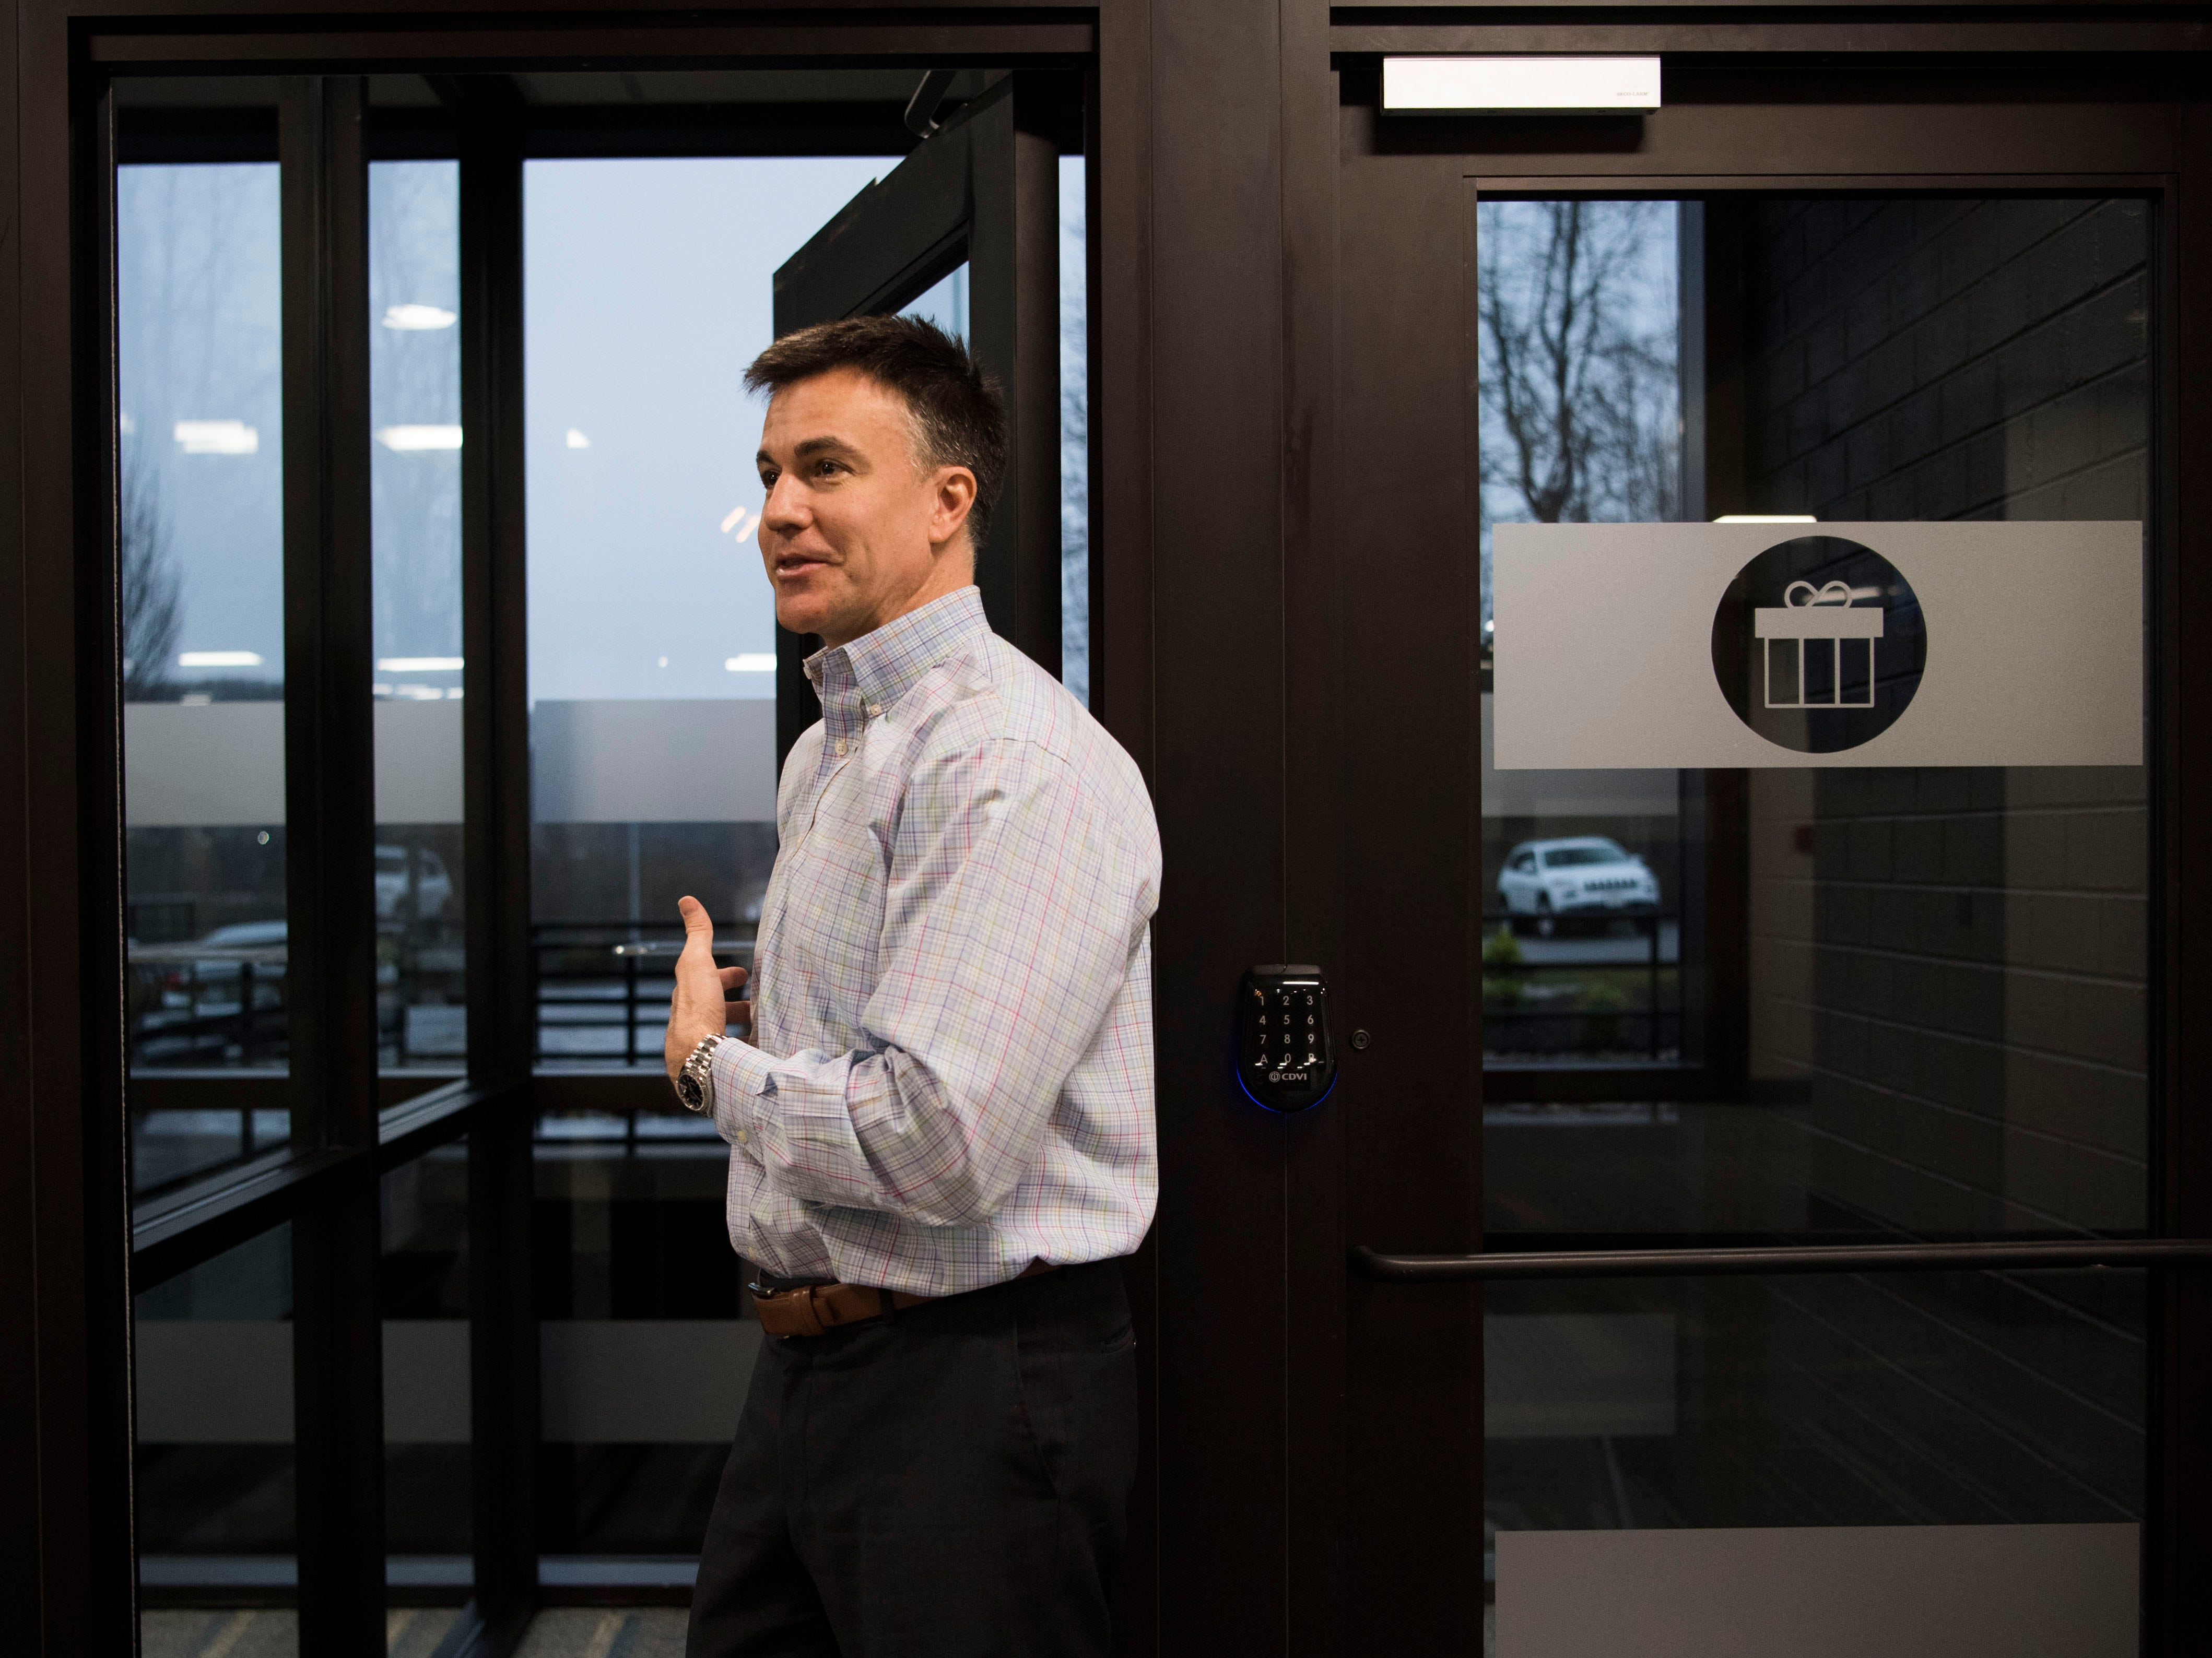 Ryan Chinn shows off a phone booth and package area at Ts117, a new coworking space in Oak Ridge run by himself and his brother Rick, Tuesday, Feb. 19, 2019.